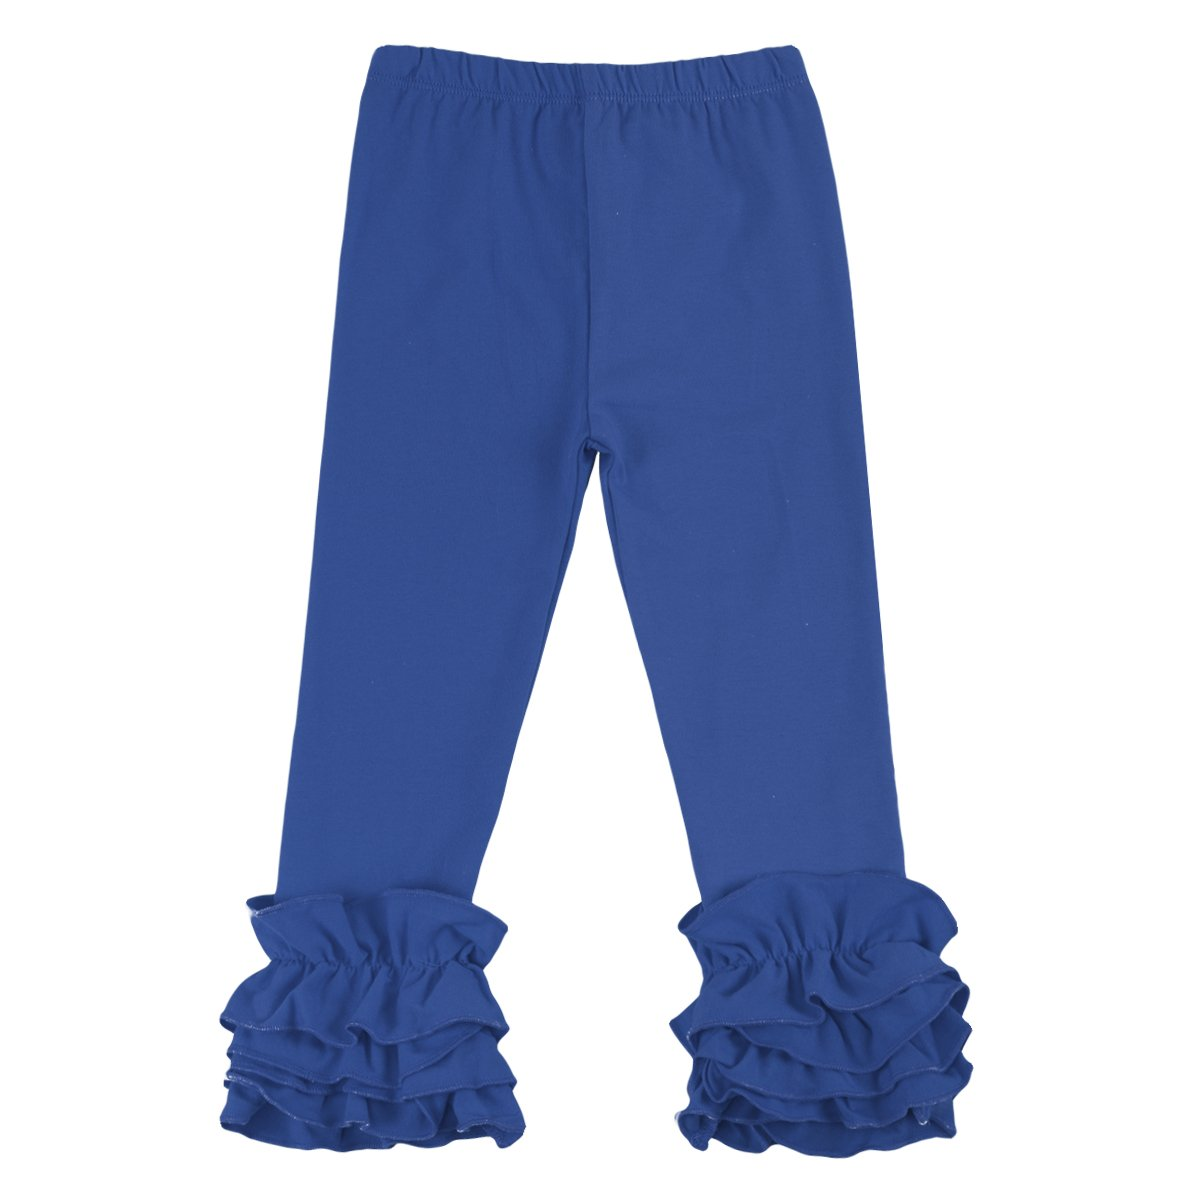 Little Girl's Double Icing Ruffle Leggings Pants Cotton Tights Active Trousers